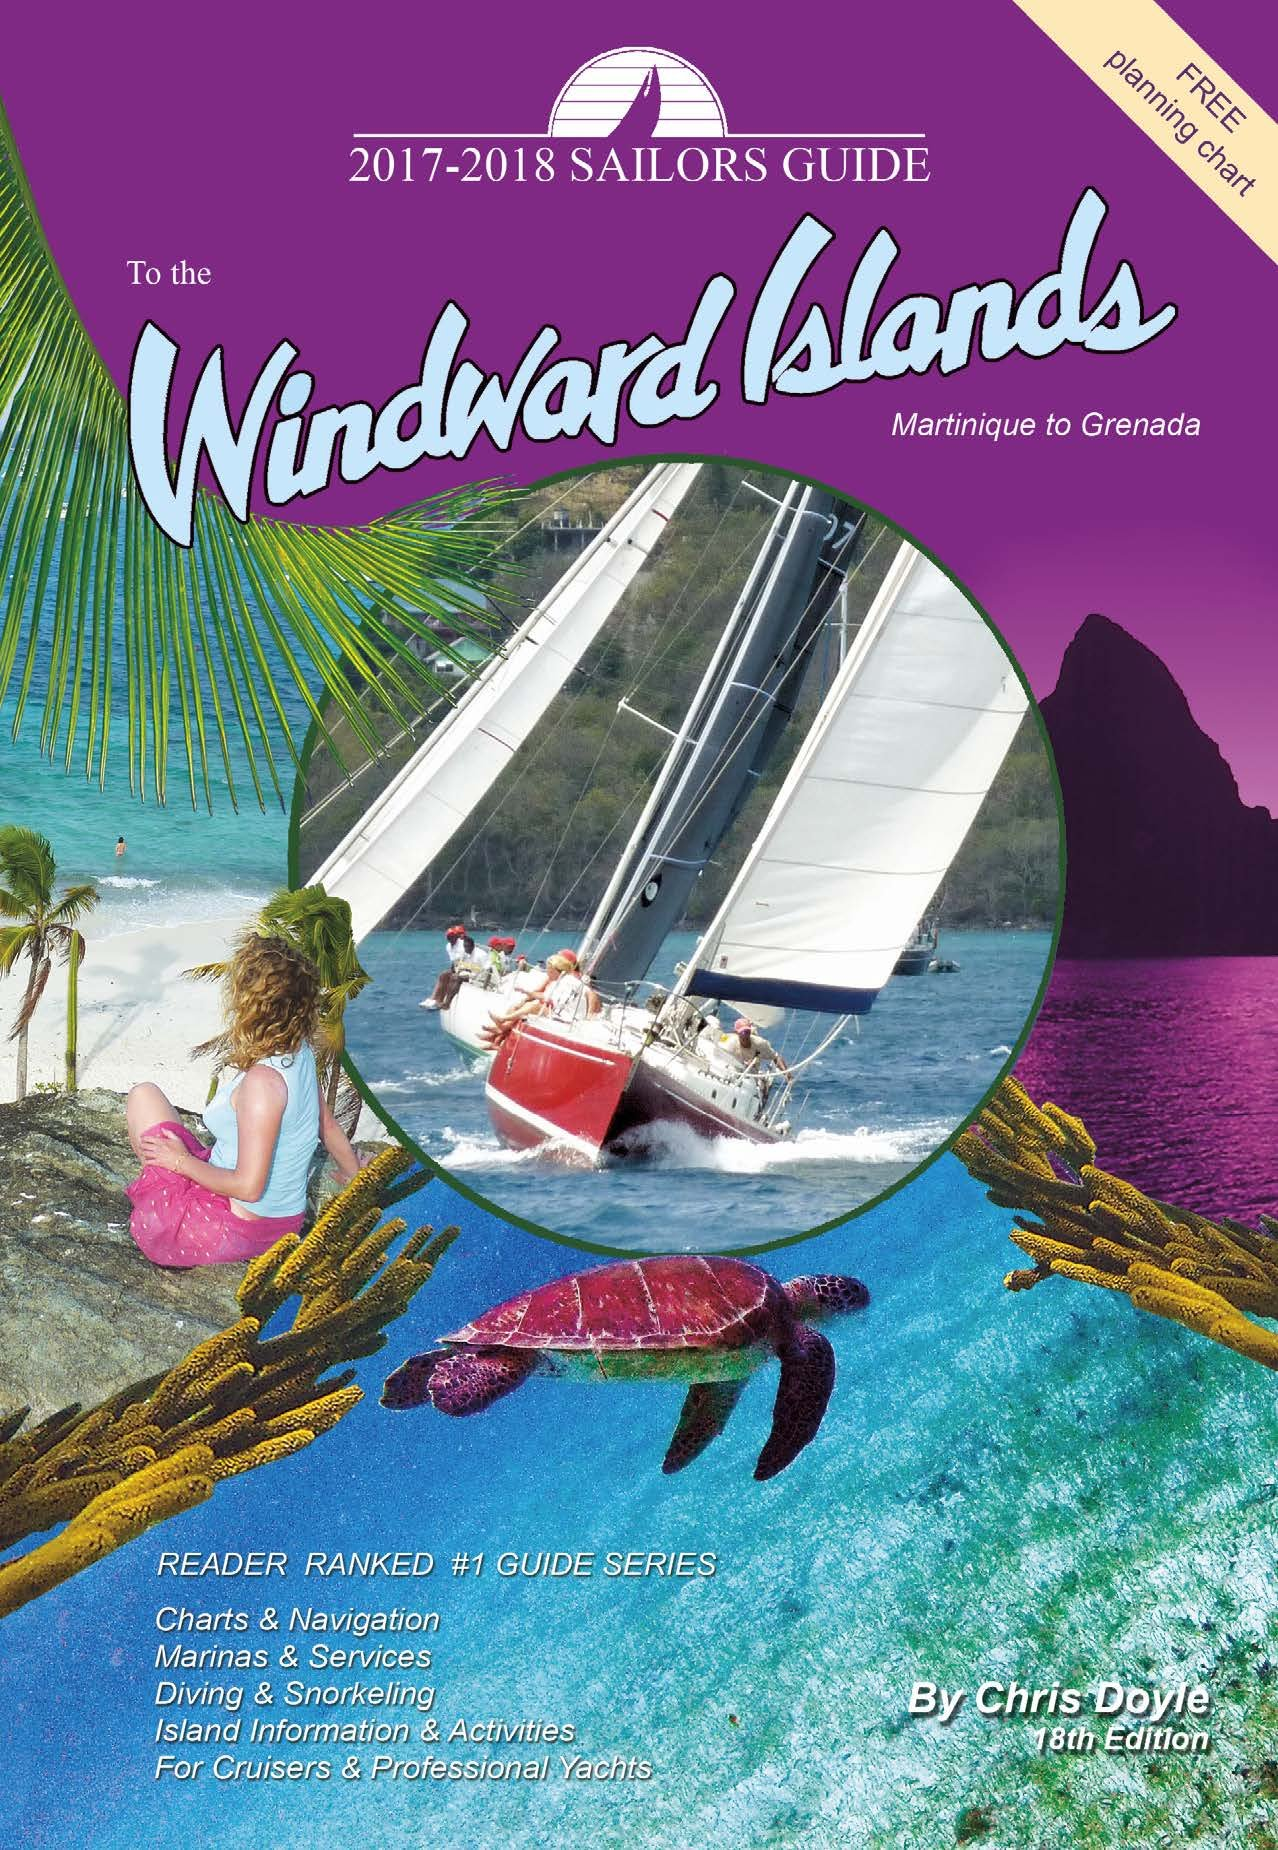 The 2017-2018 Sailors Guide To The Windward Islands: Martinique To Grenada